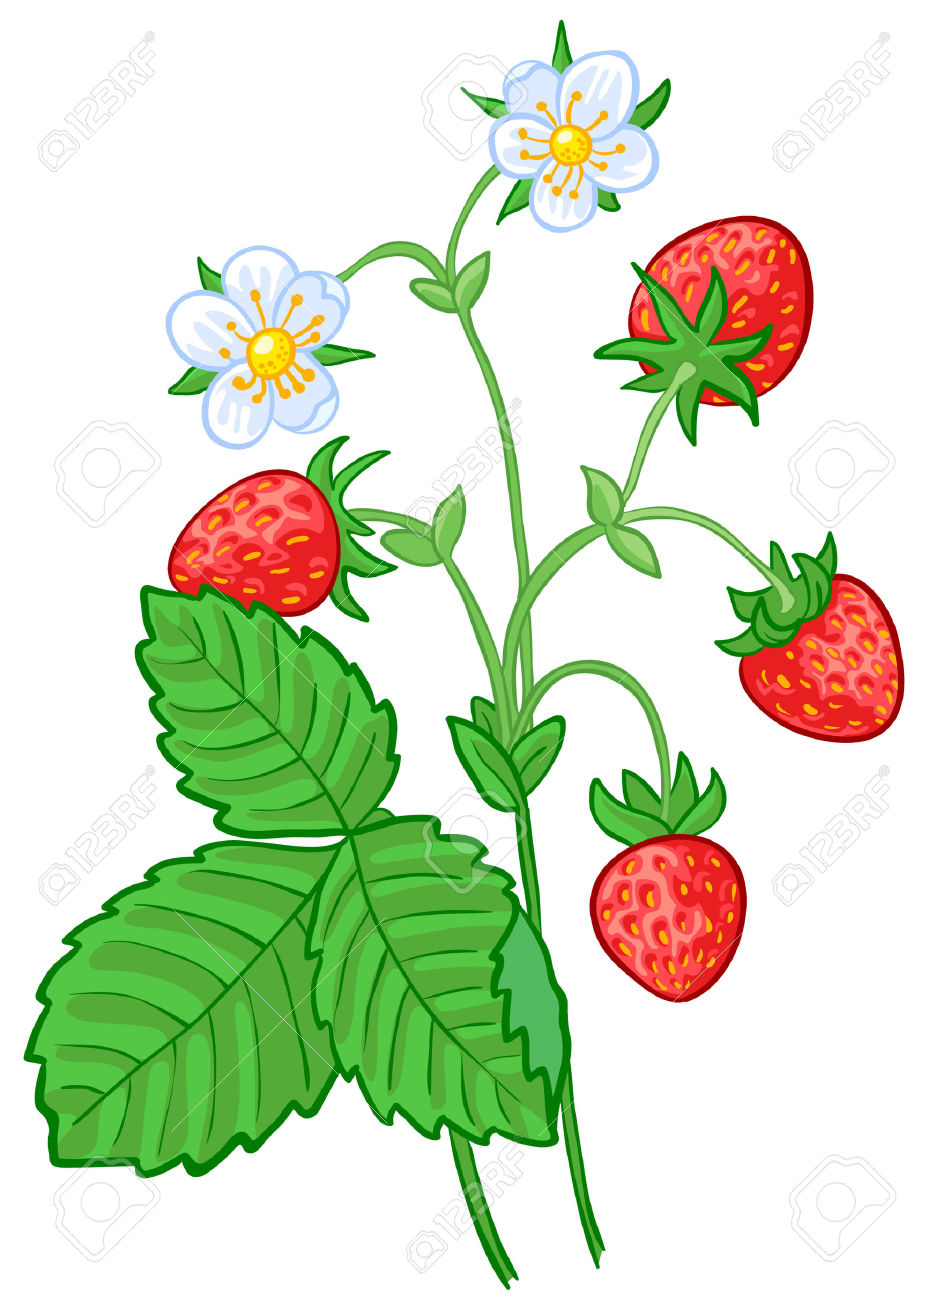 Isolated Illustration Of Strawberry Branch Royalty Free Cliparts.